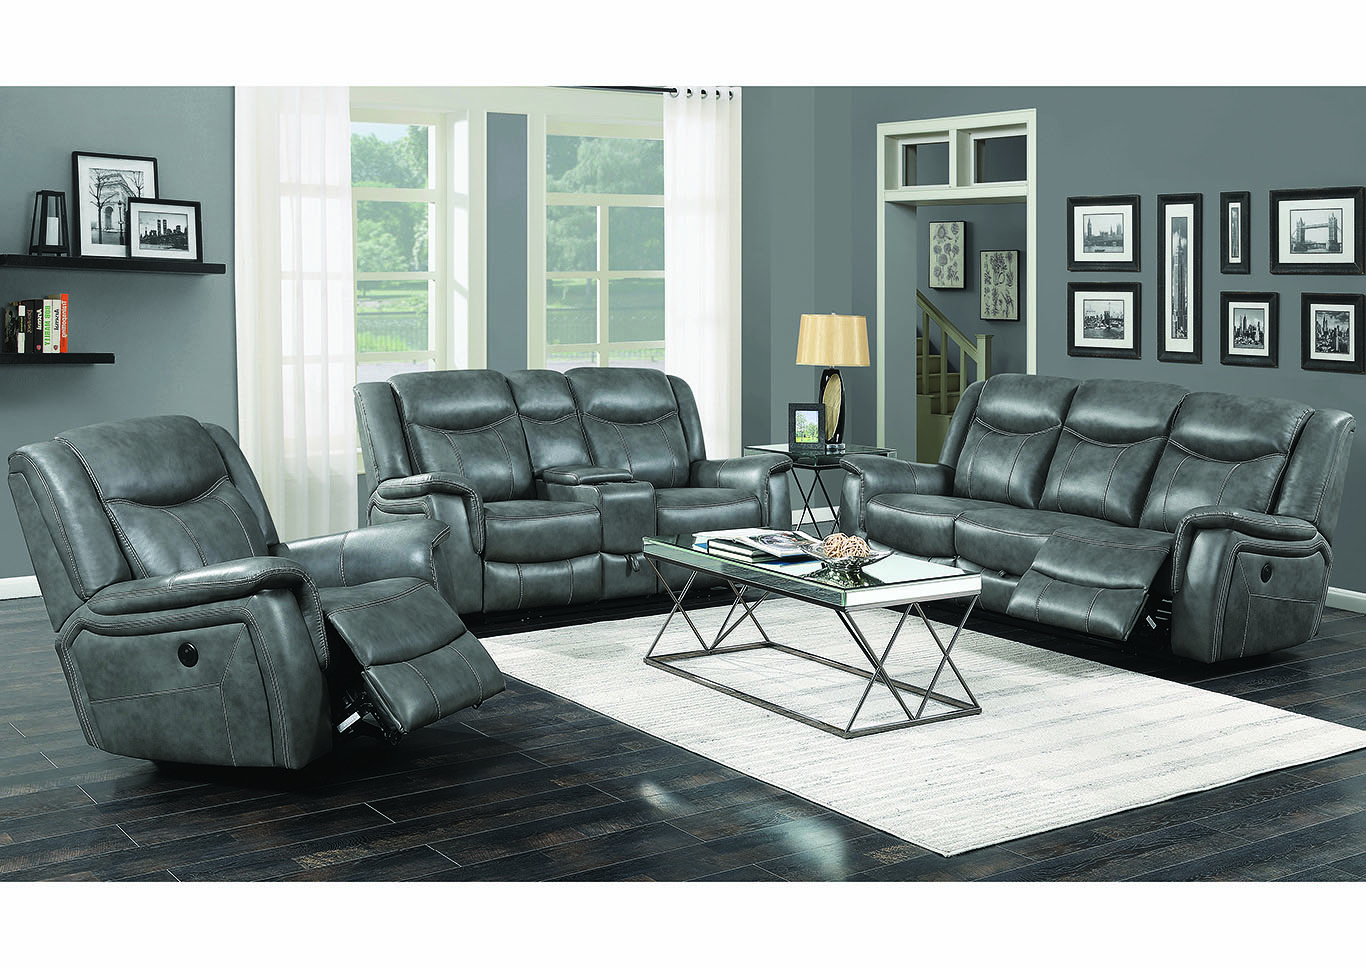 Conrad Grey Power Reclining Loveseat,Coaster Furniture